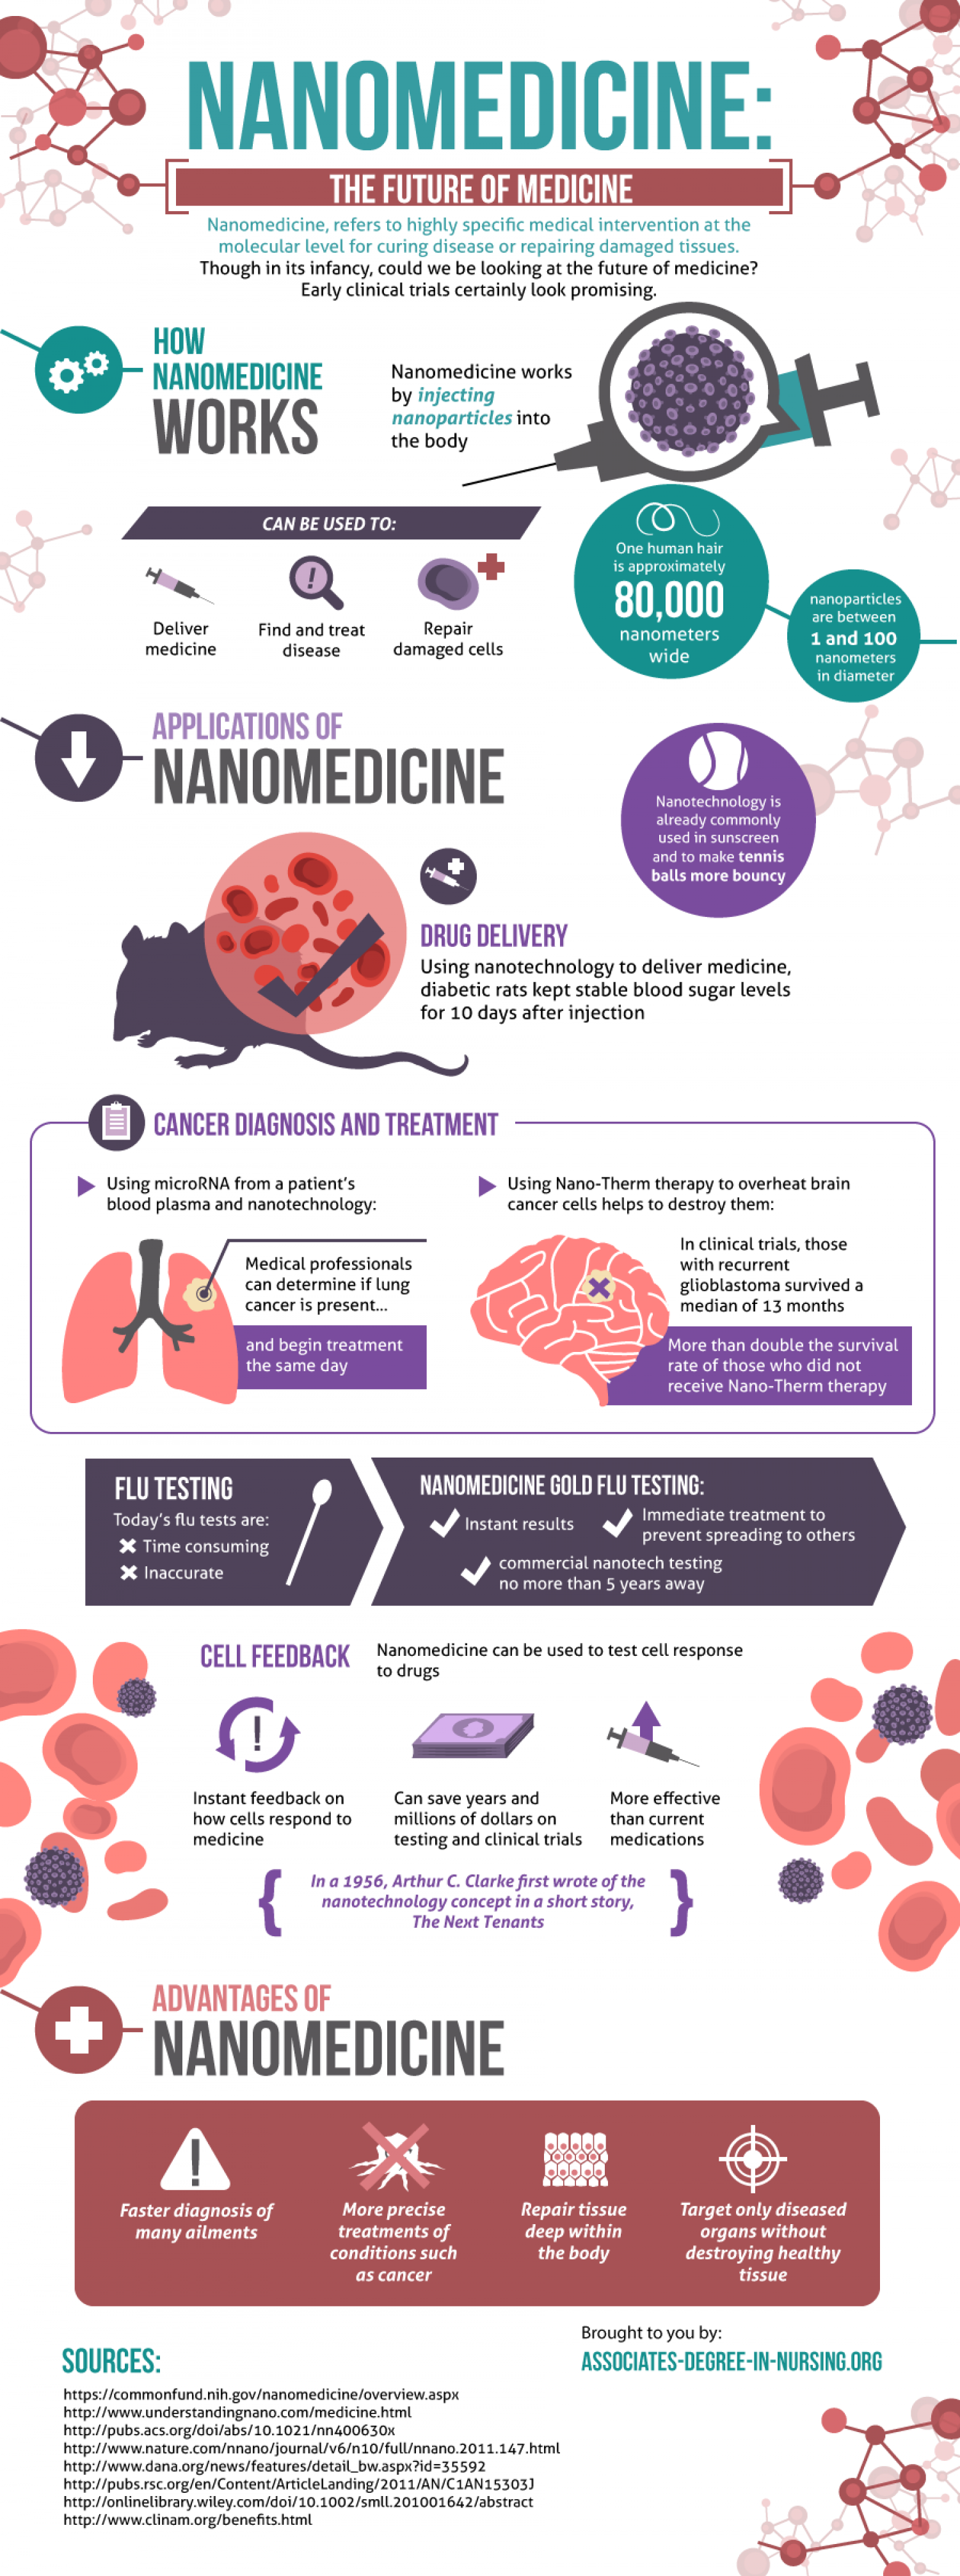 Nanomedicine: The Future of Medicine Infographic